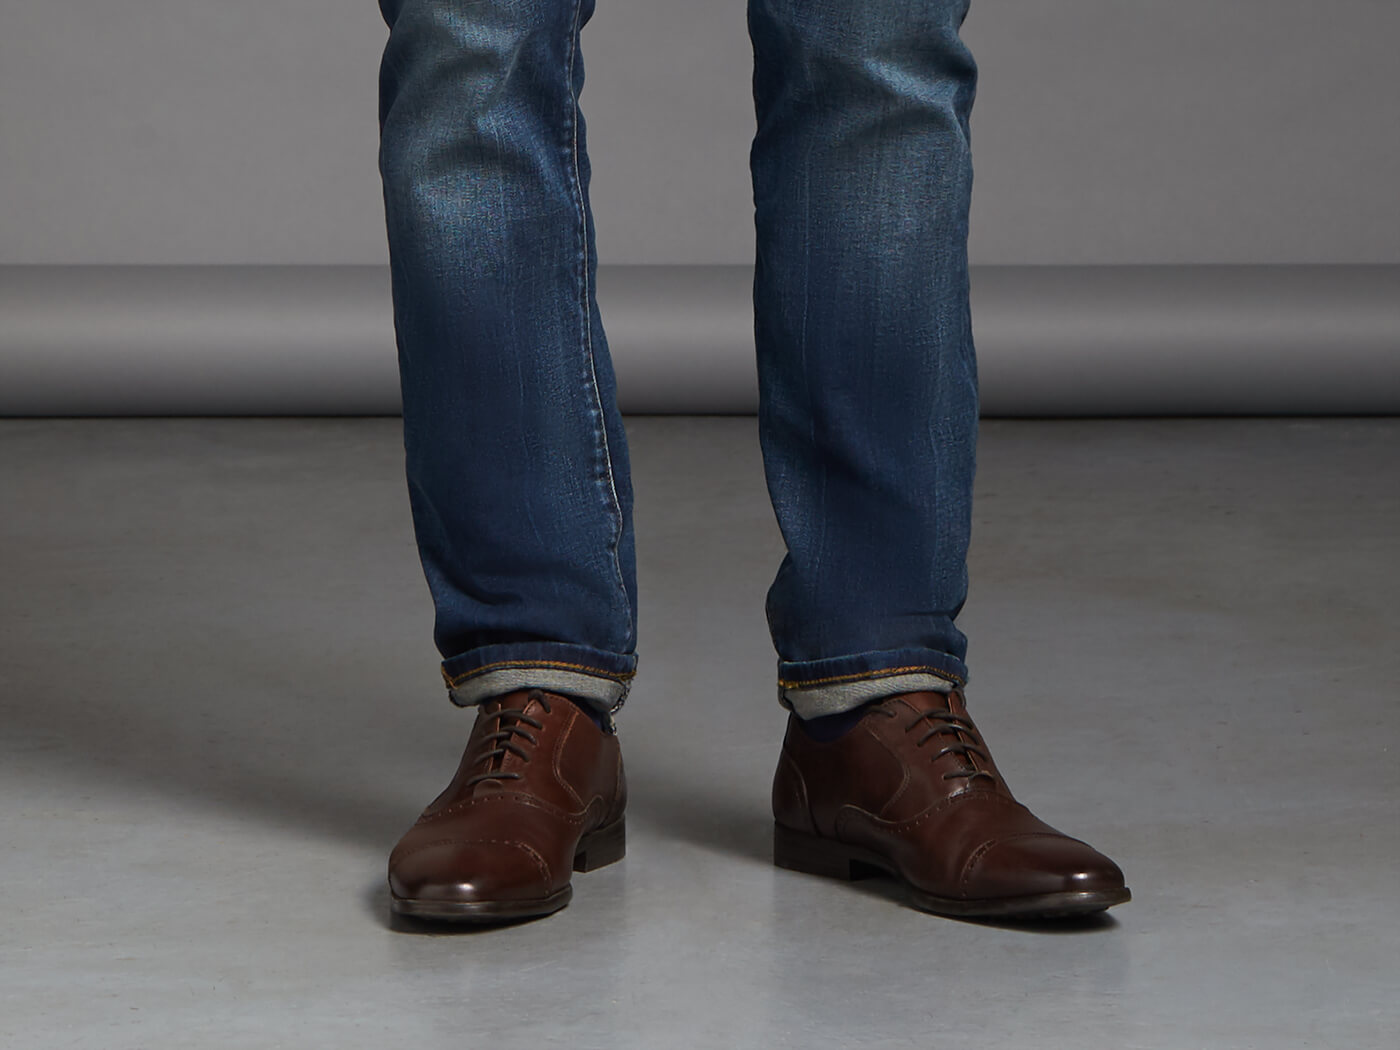 Pairing casual men's shoes with the right jeans can bring your style to new heights while maintaining your comfort level. If shoes are a neutral color, choose jeans featuring darker denim and designed with an average or skinny fit.